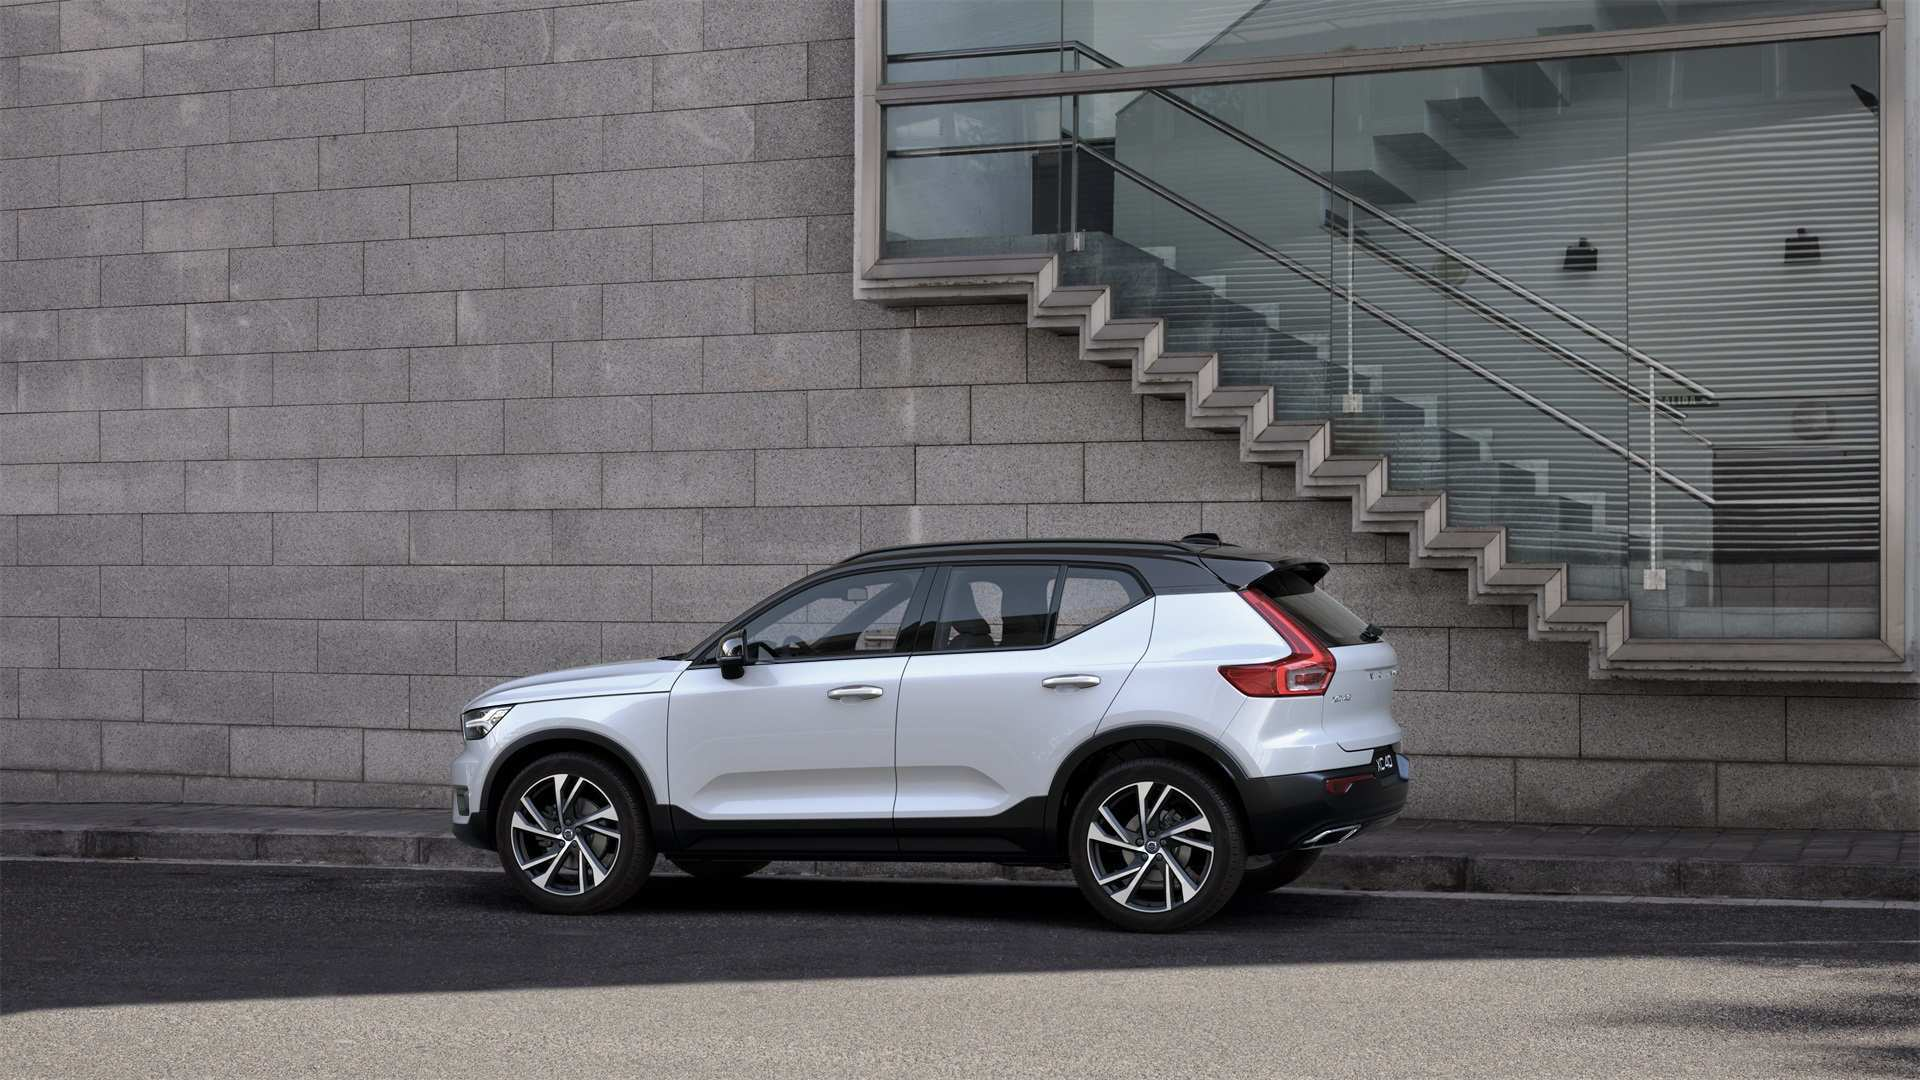 80 Concept of 2019 Volvo Xc40 T5 R Design Price for 2019 Volvo Xc40 T5 R Design